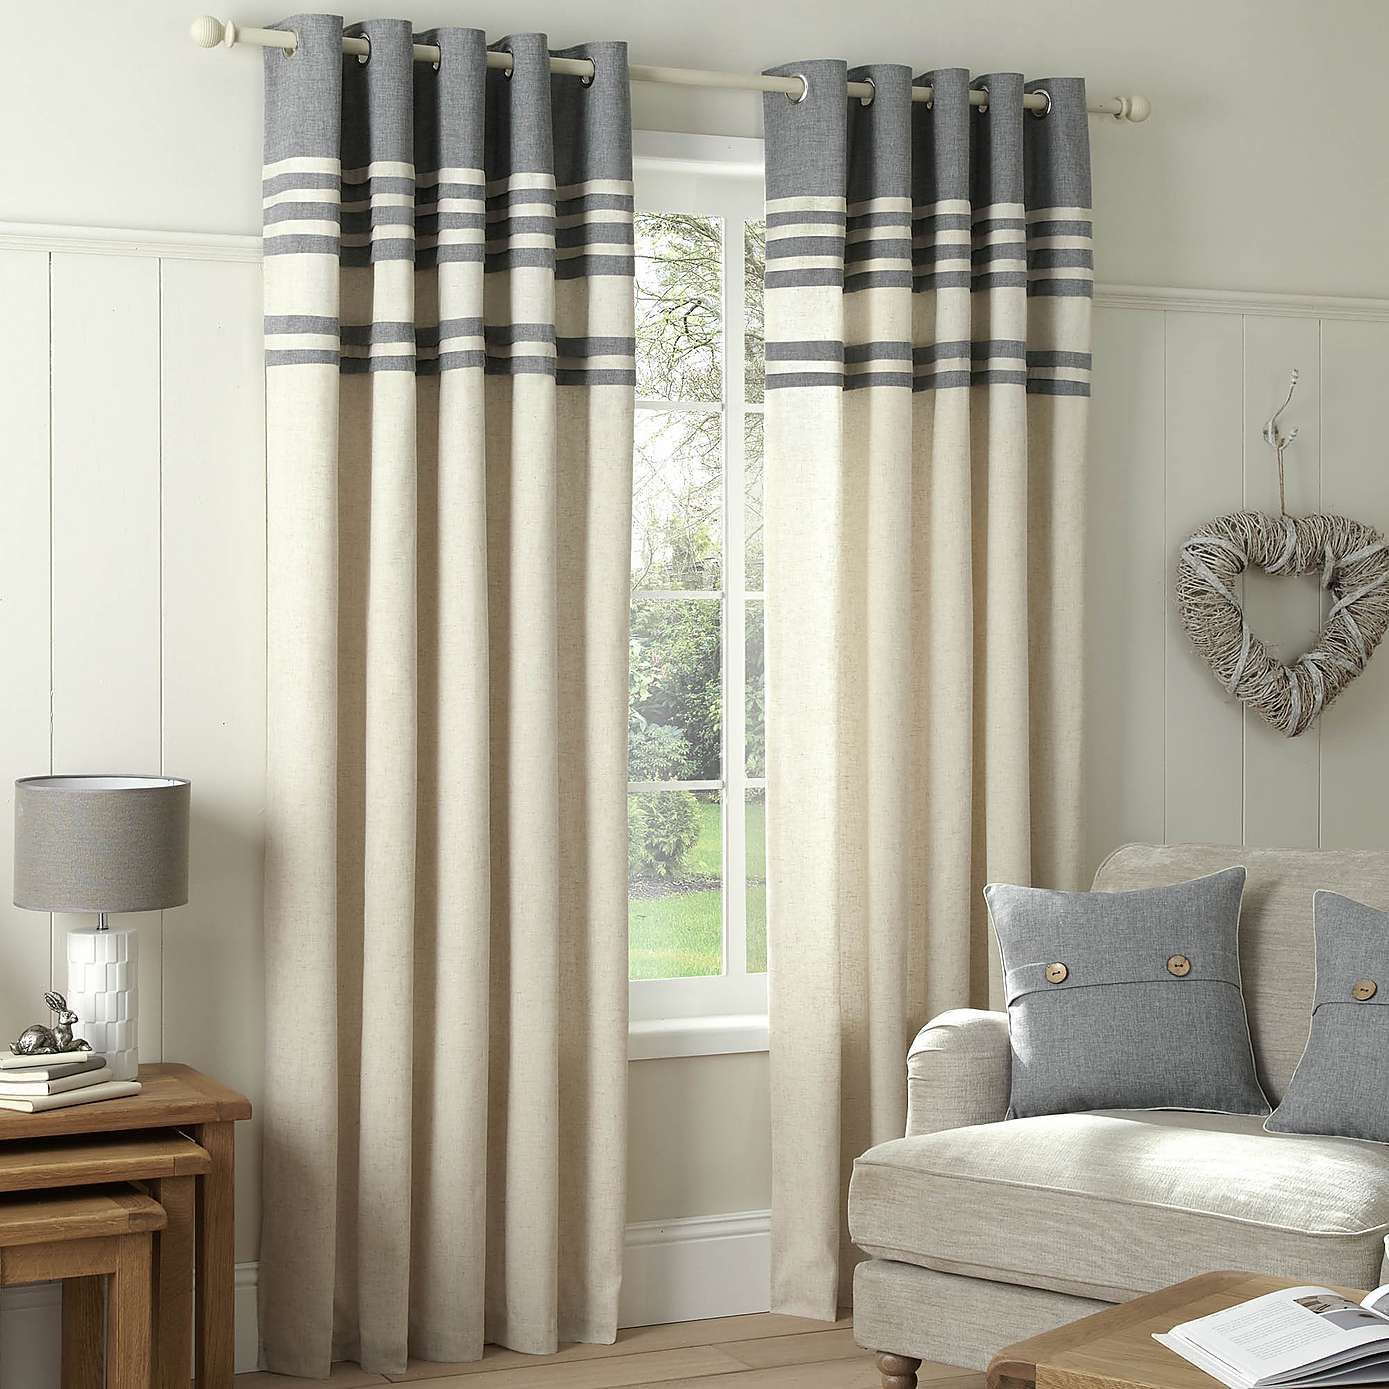 Dunelm Mill Ready Made Eyelet Curtains Nakedsnakepress Com